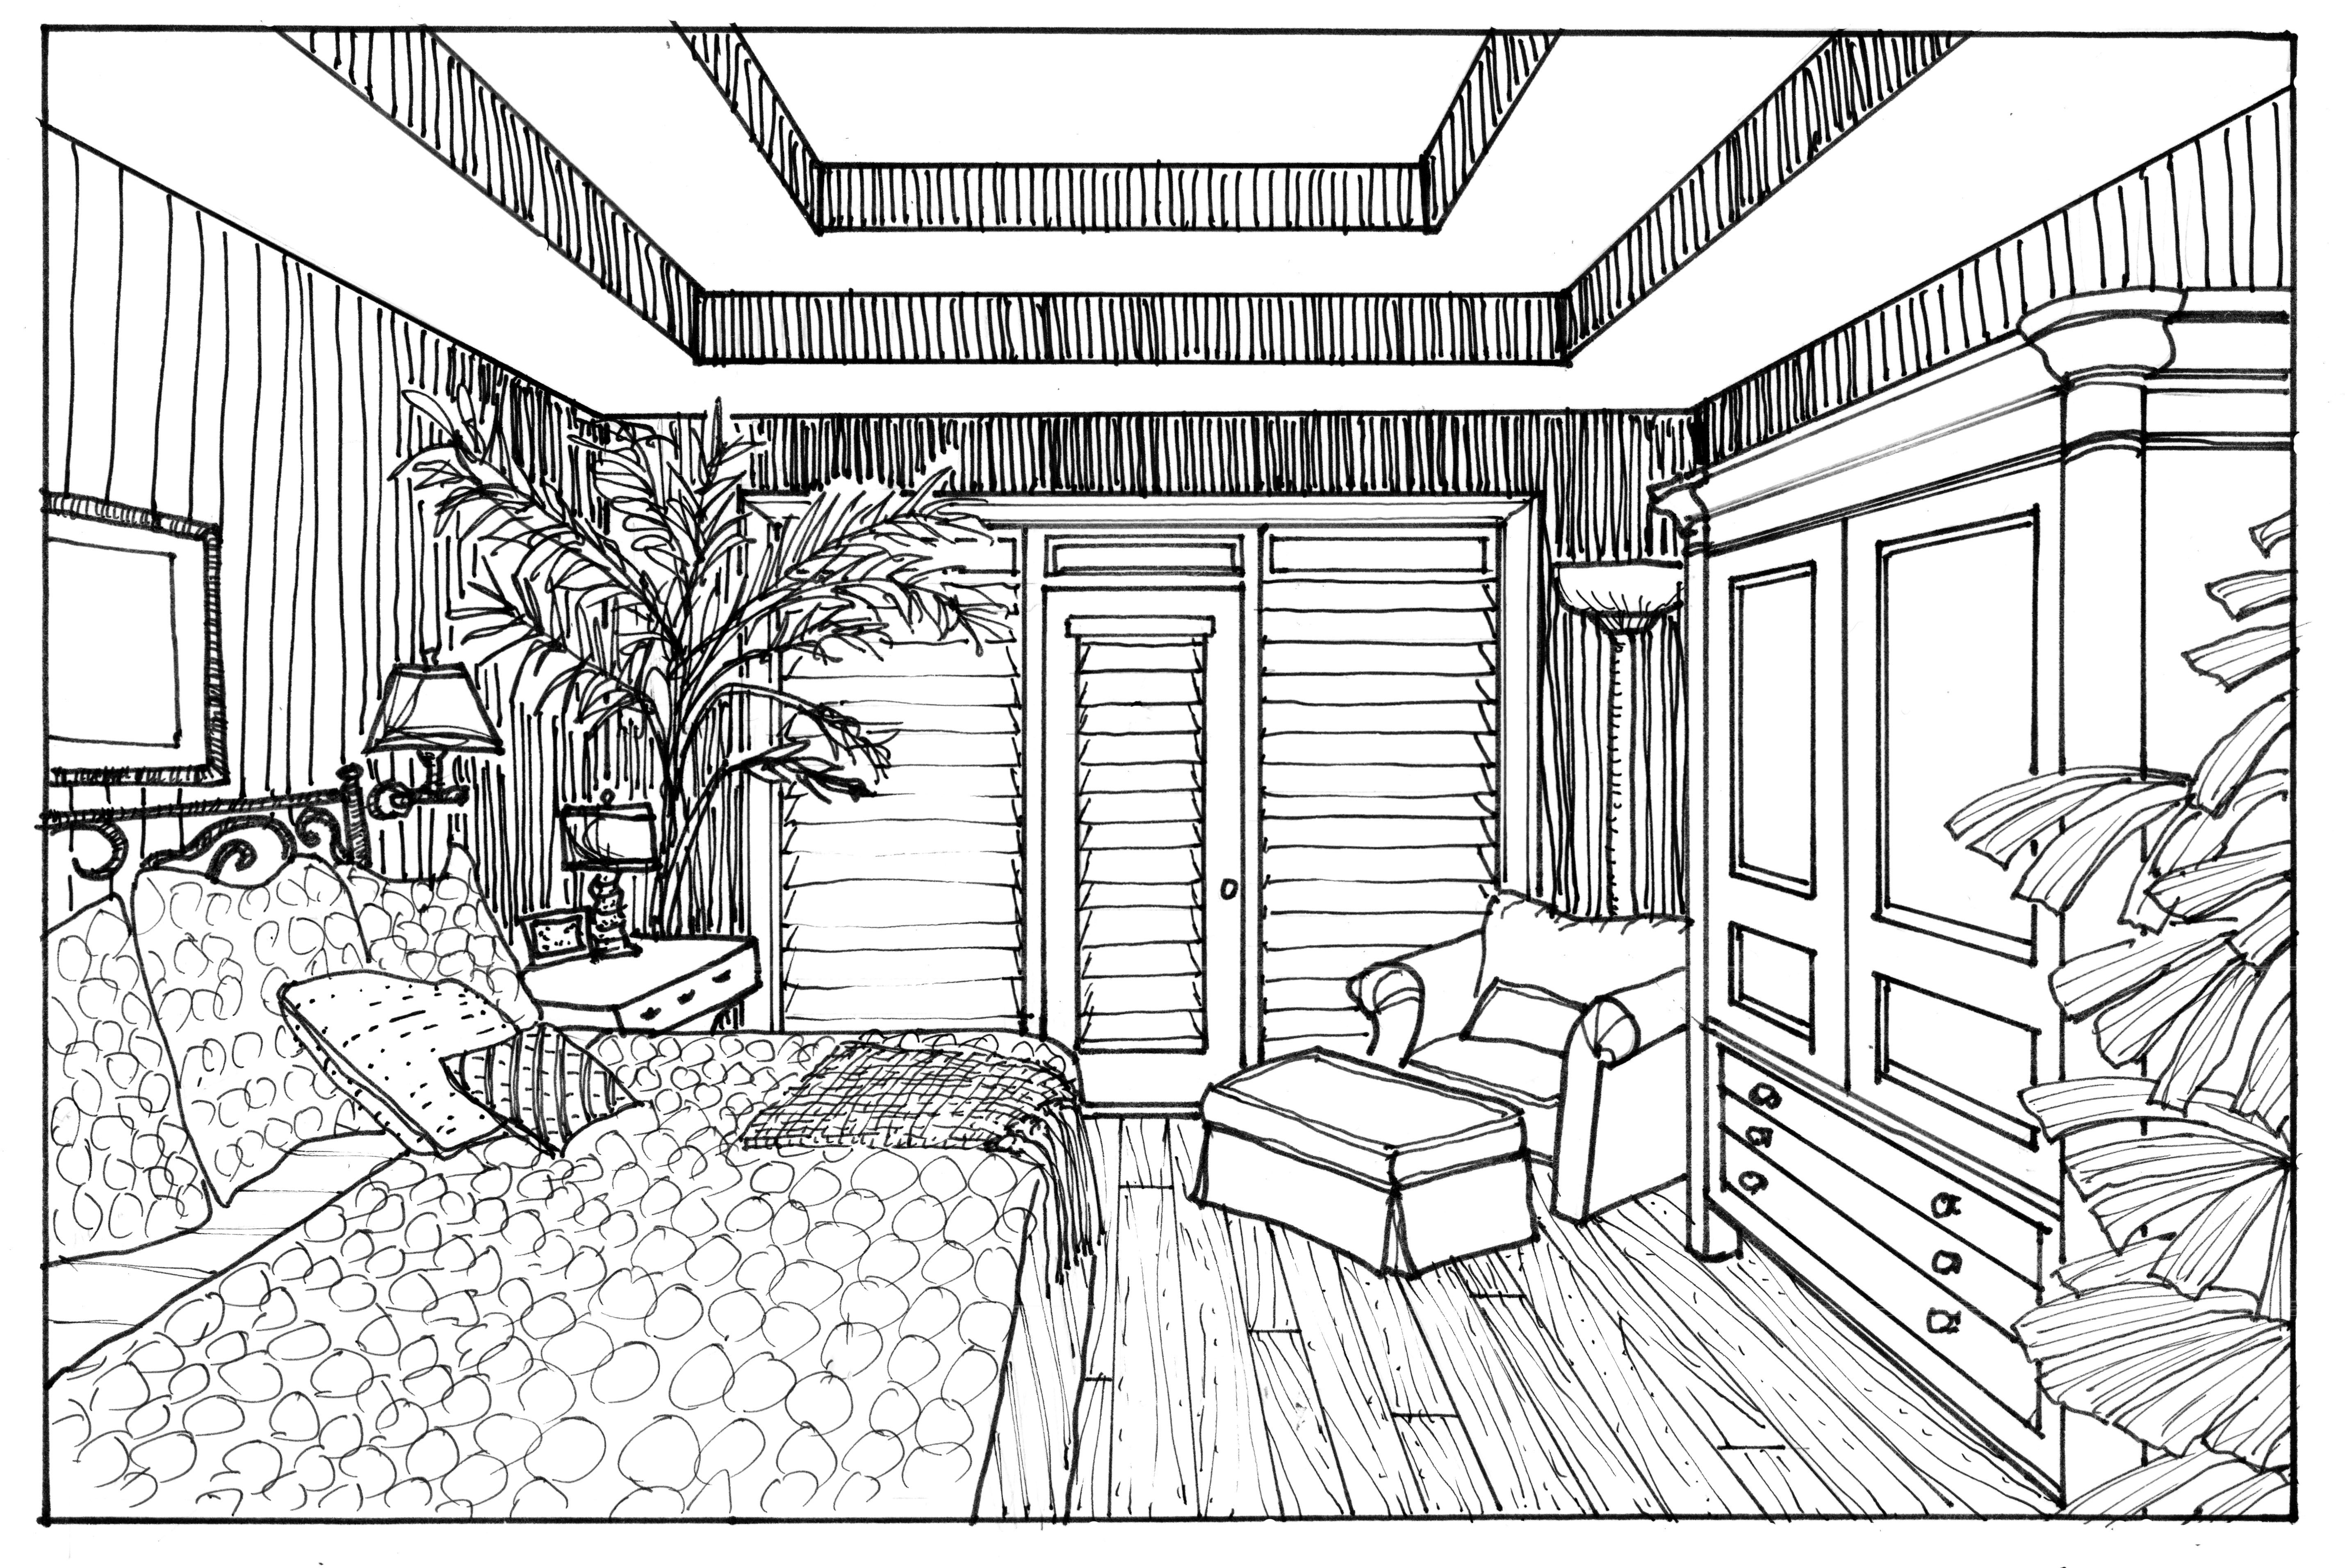 Using a photograph of an interior space is great tool to for drawing a realistic interior